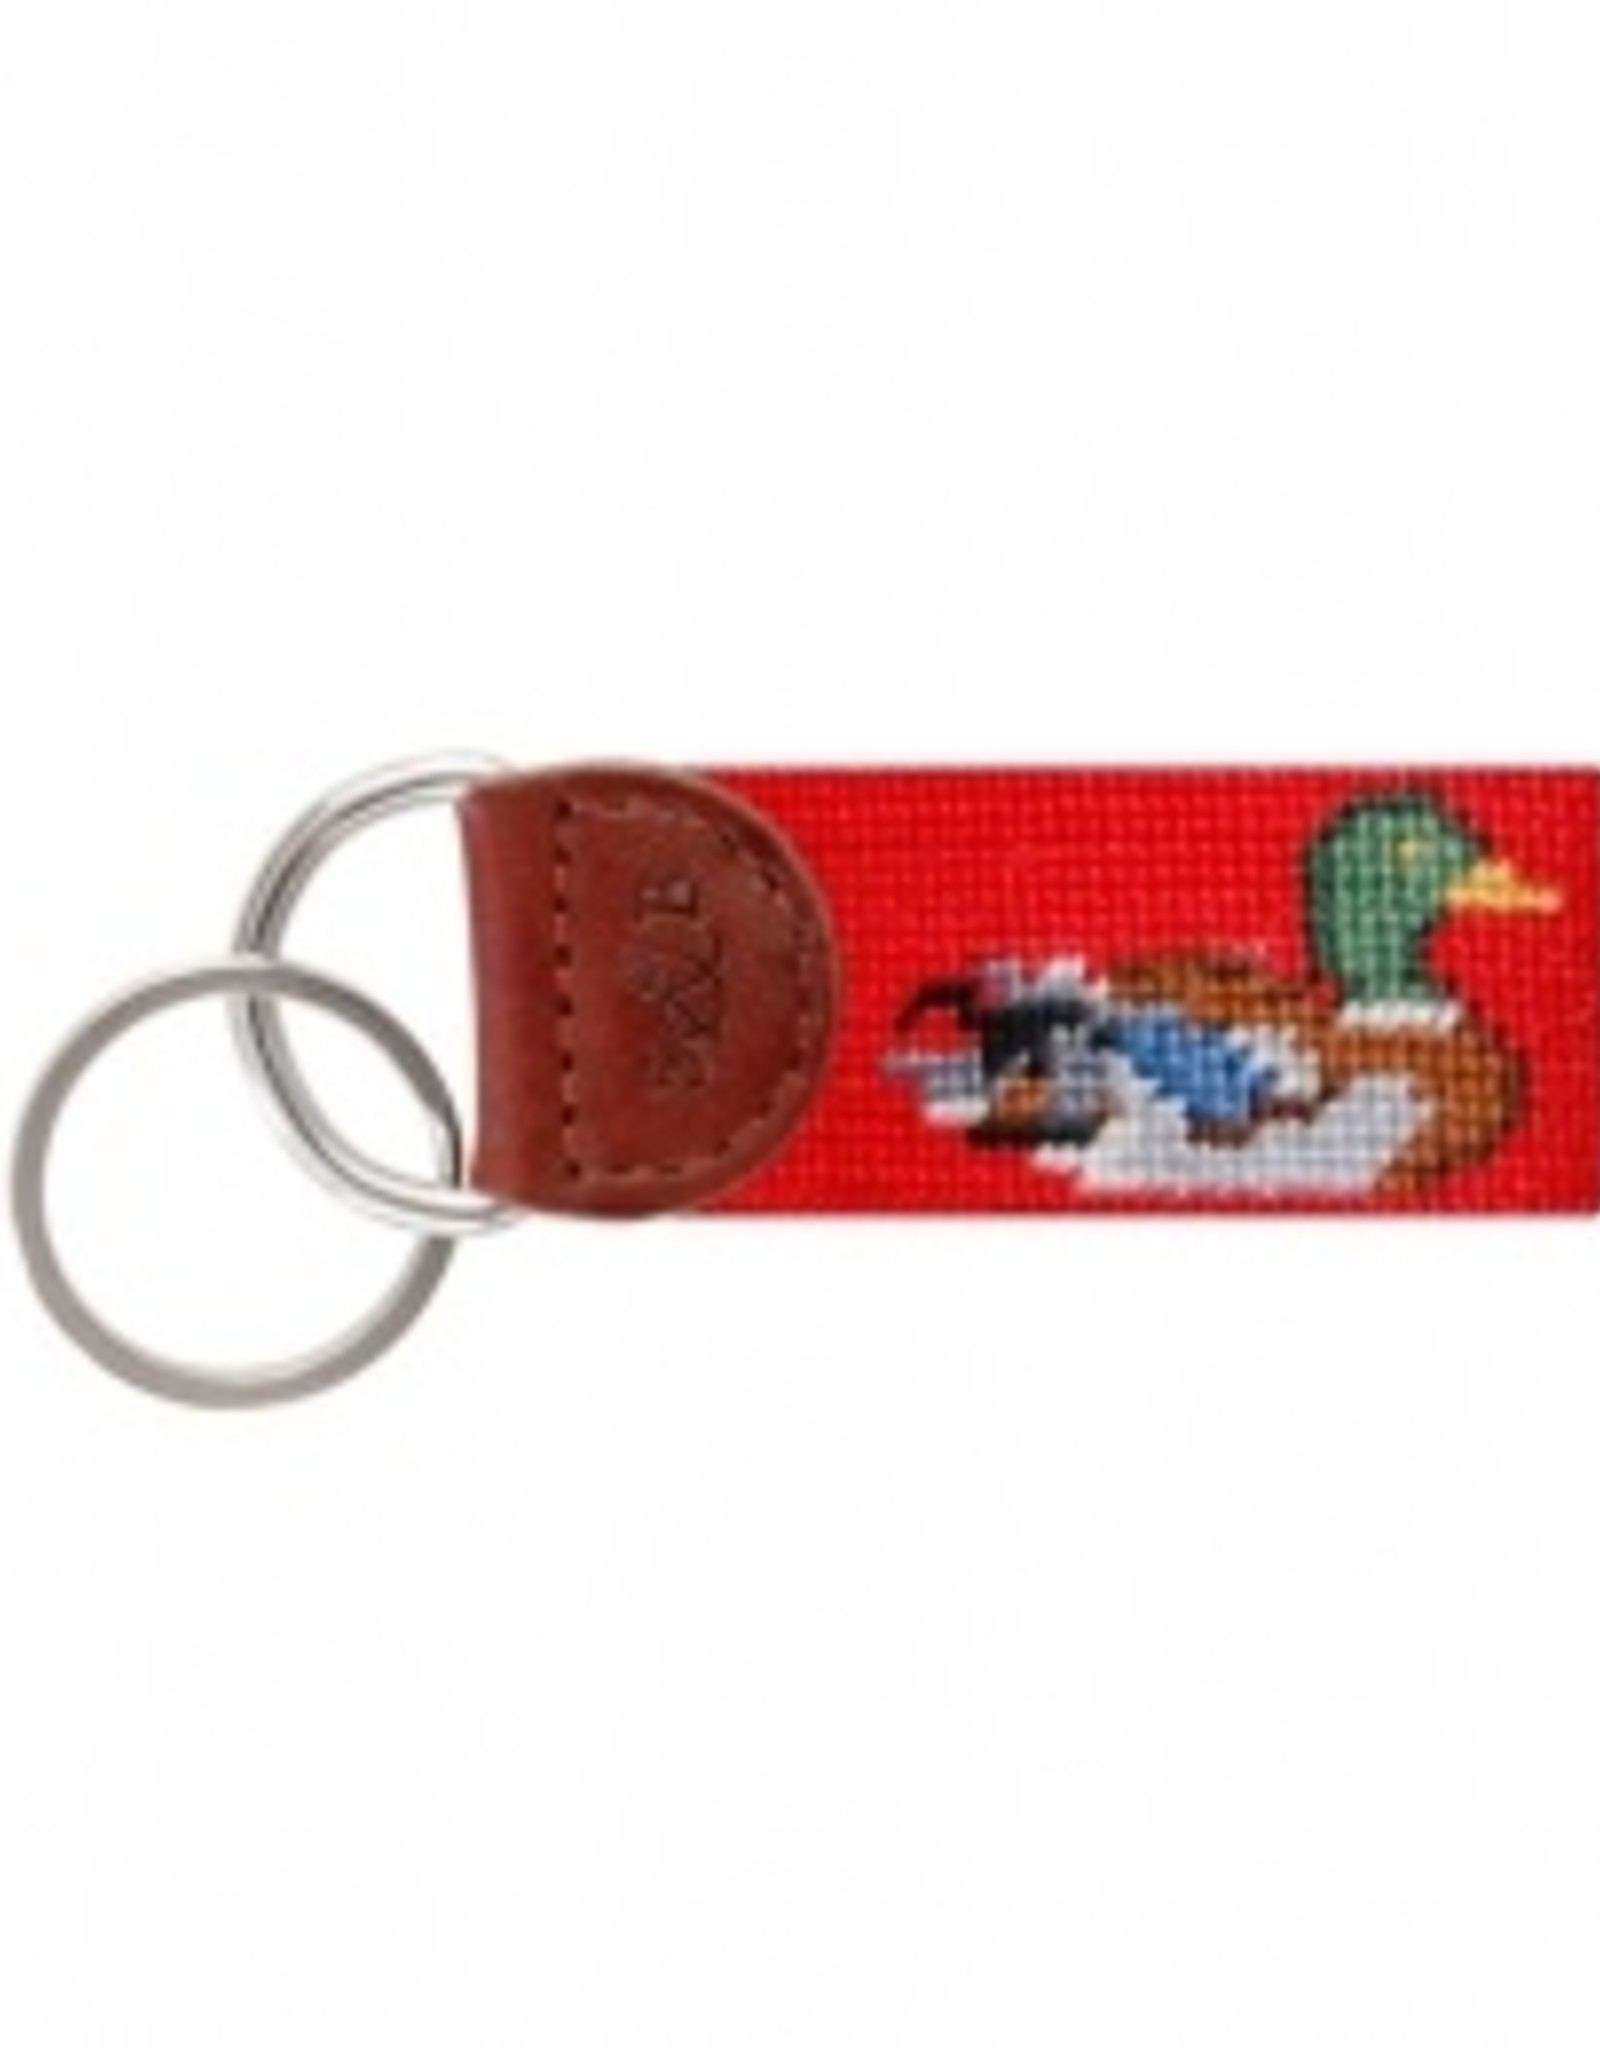 Smathers & Branson Duck Key Fob